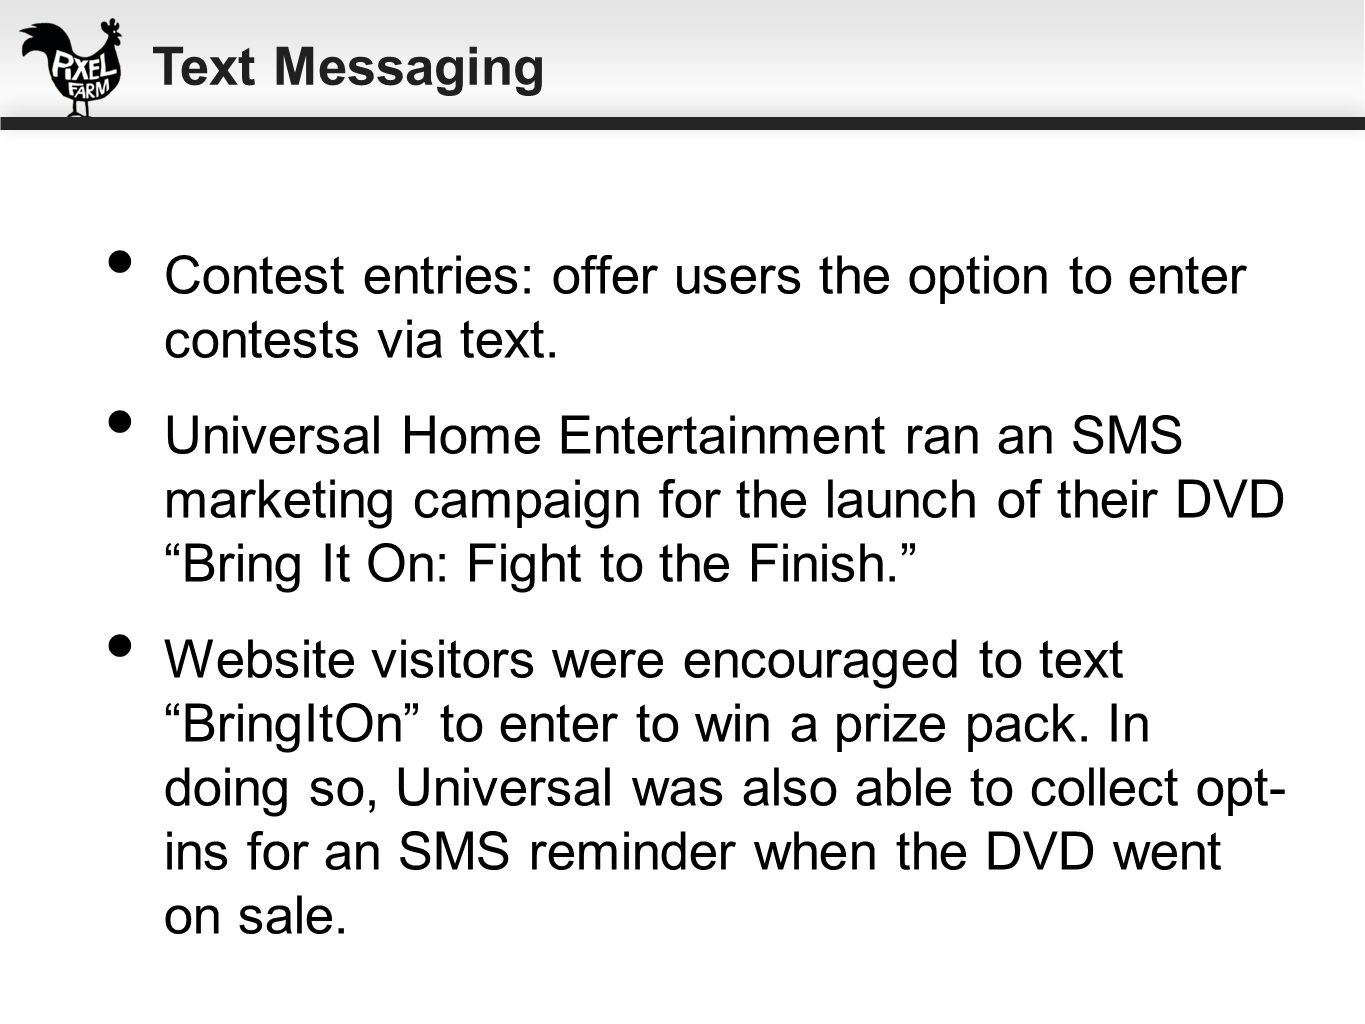 Text Messaging Contest entries: offer users the option to enter contests via text.